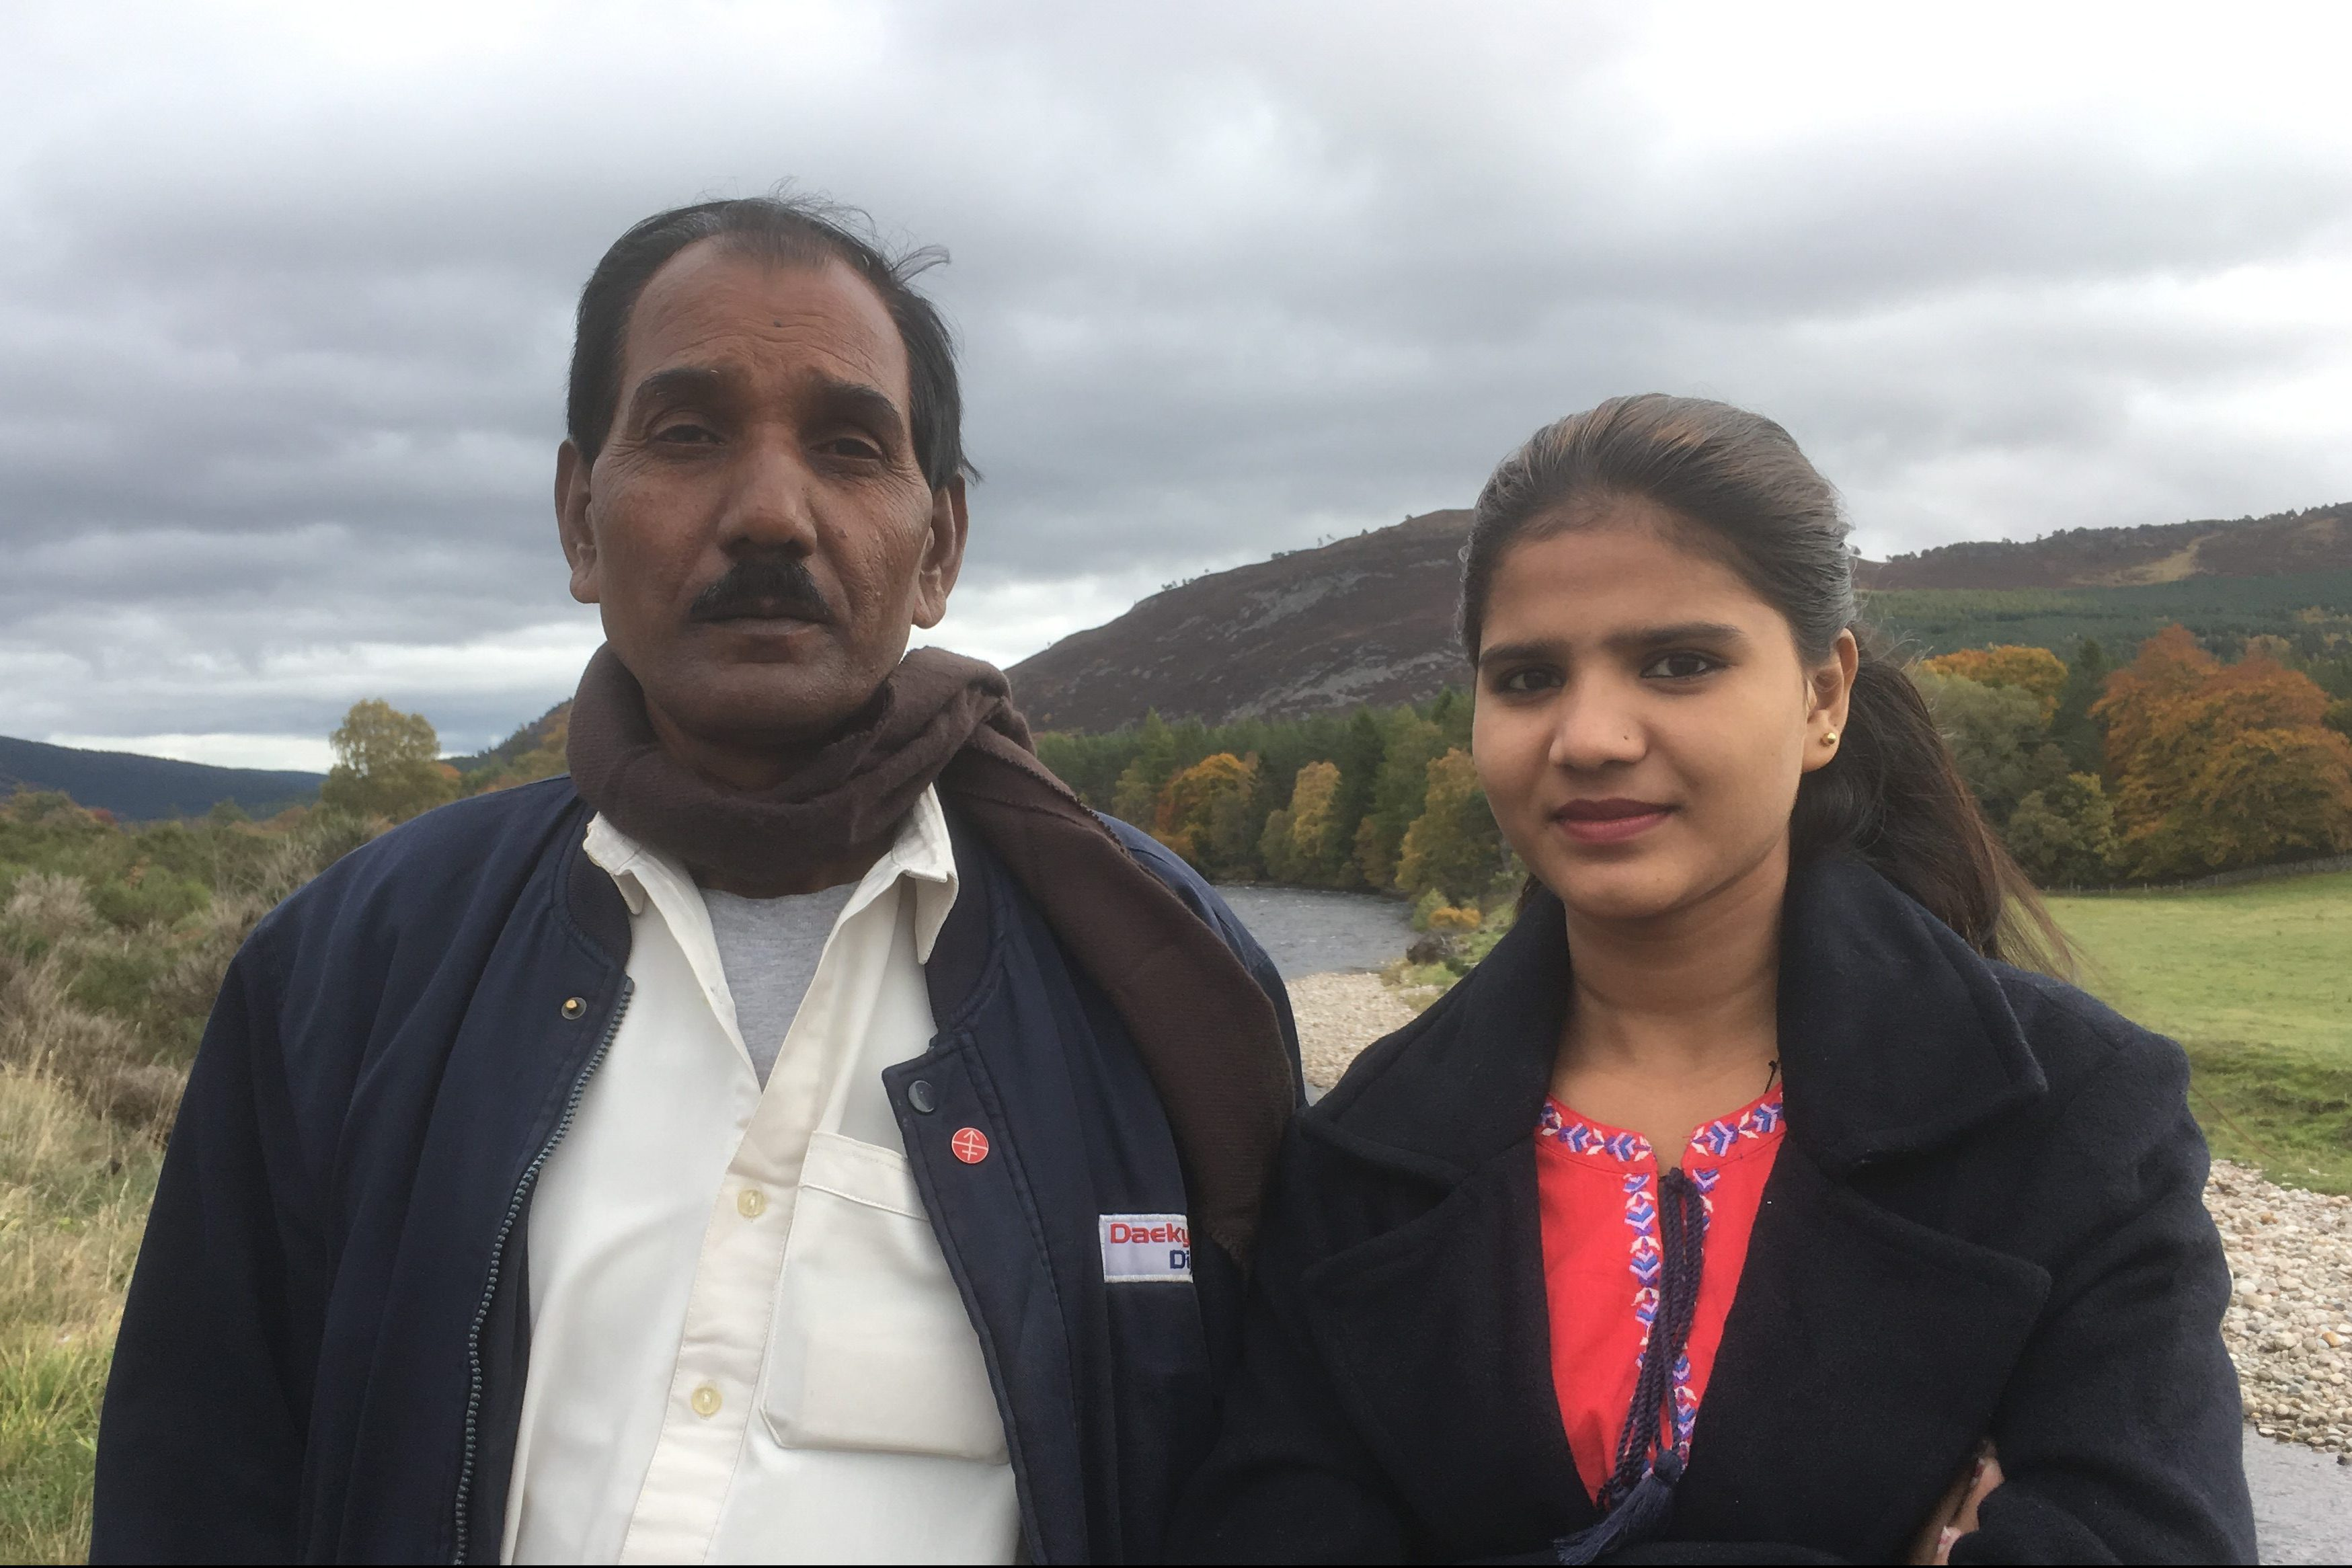 Asia Bibi's husband and daughter, Ashiq Masih and Eisham Ashiq, during their October 2018 visit to the UK as guests of Aid to the Church in Need (© ACN).